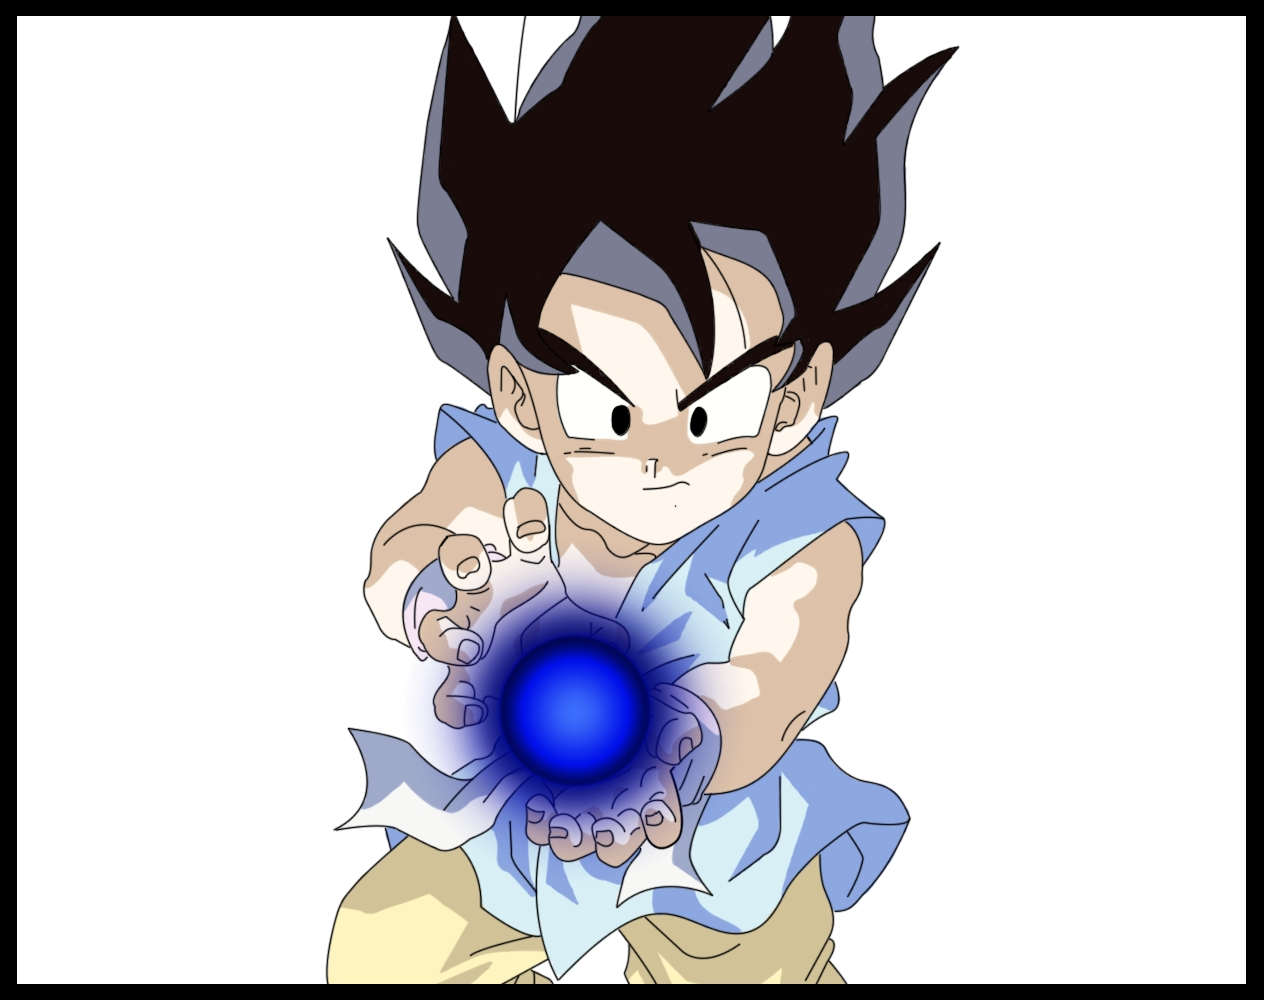 http://media.moddb.com/images/members/1/391/390402/Dragon_Ball_GT_Goku_kameha_b.jpg